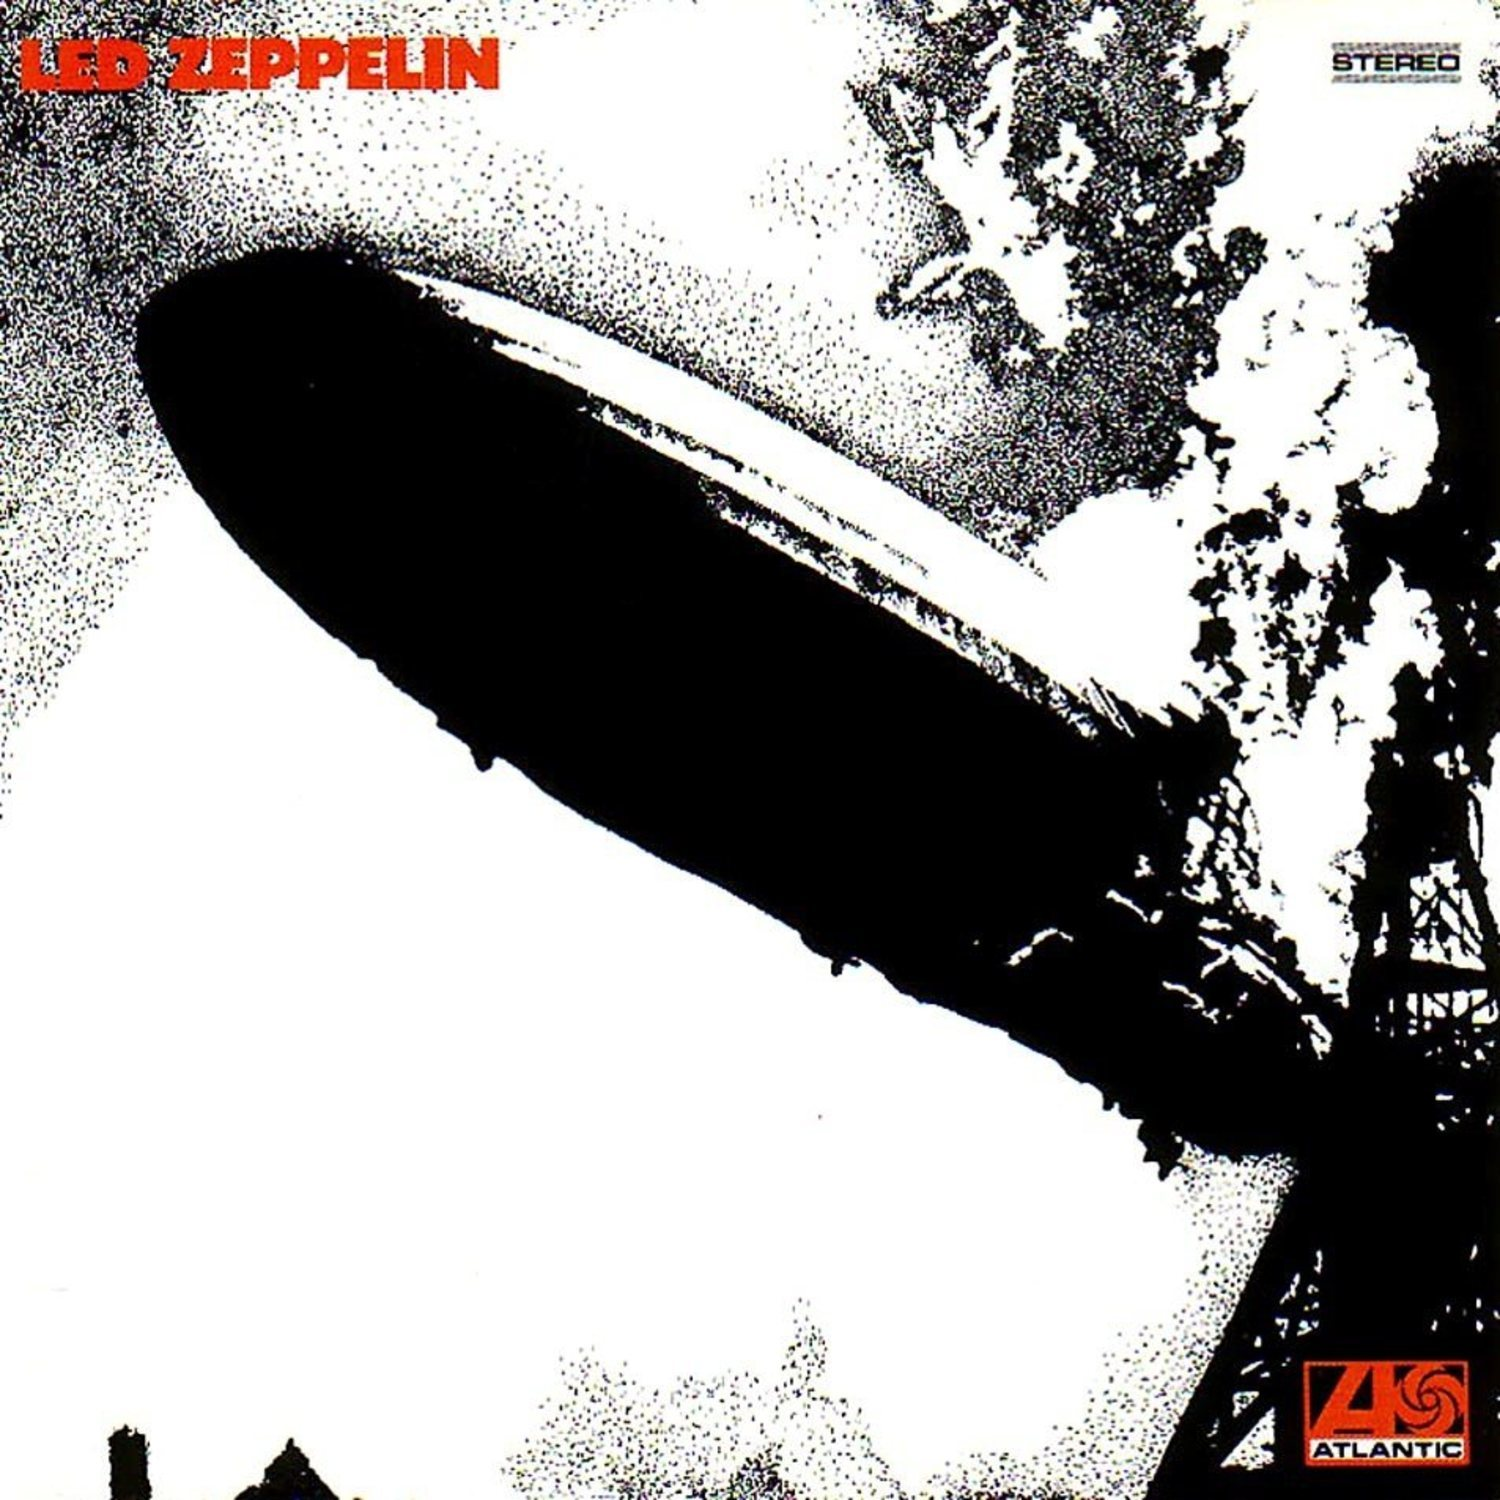 Portada de 'Led Zeppelin I', el álbum debut de Led Zeppelin.